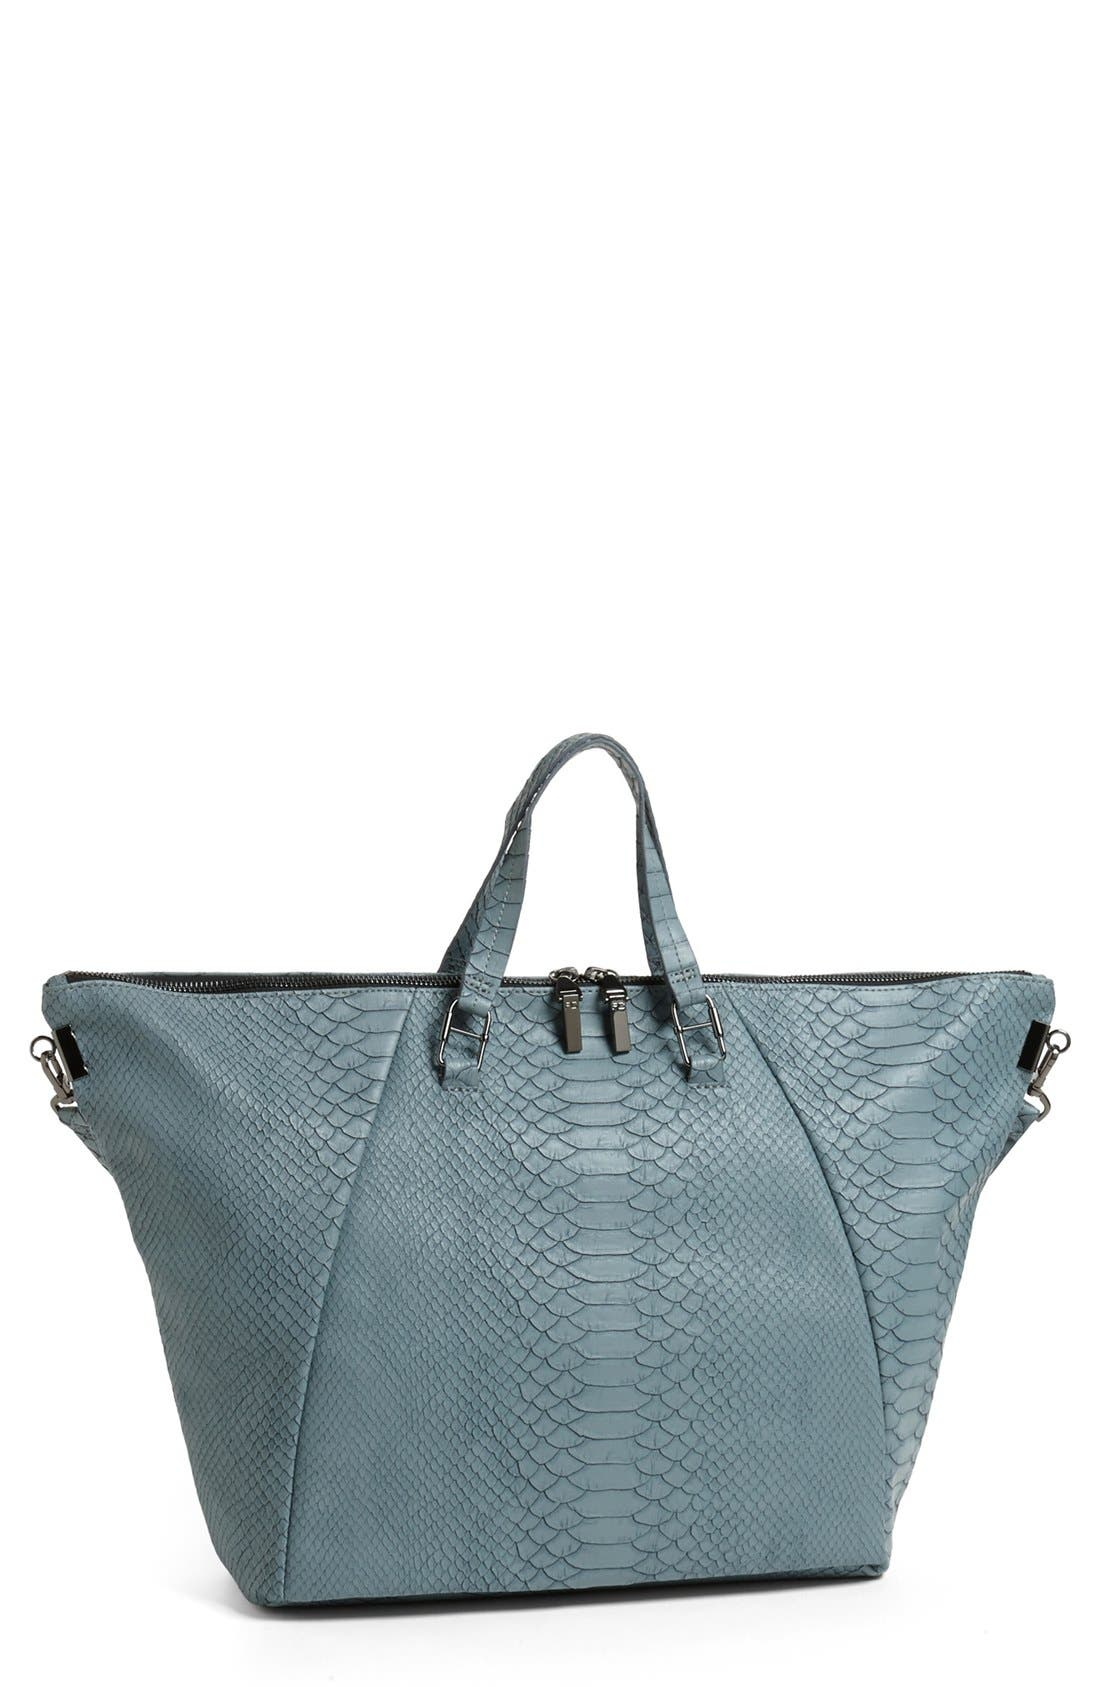 Main Image - French Connection 'Cord - Medium' Dome Tote